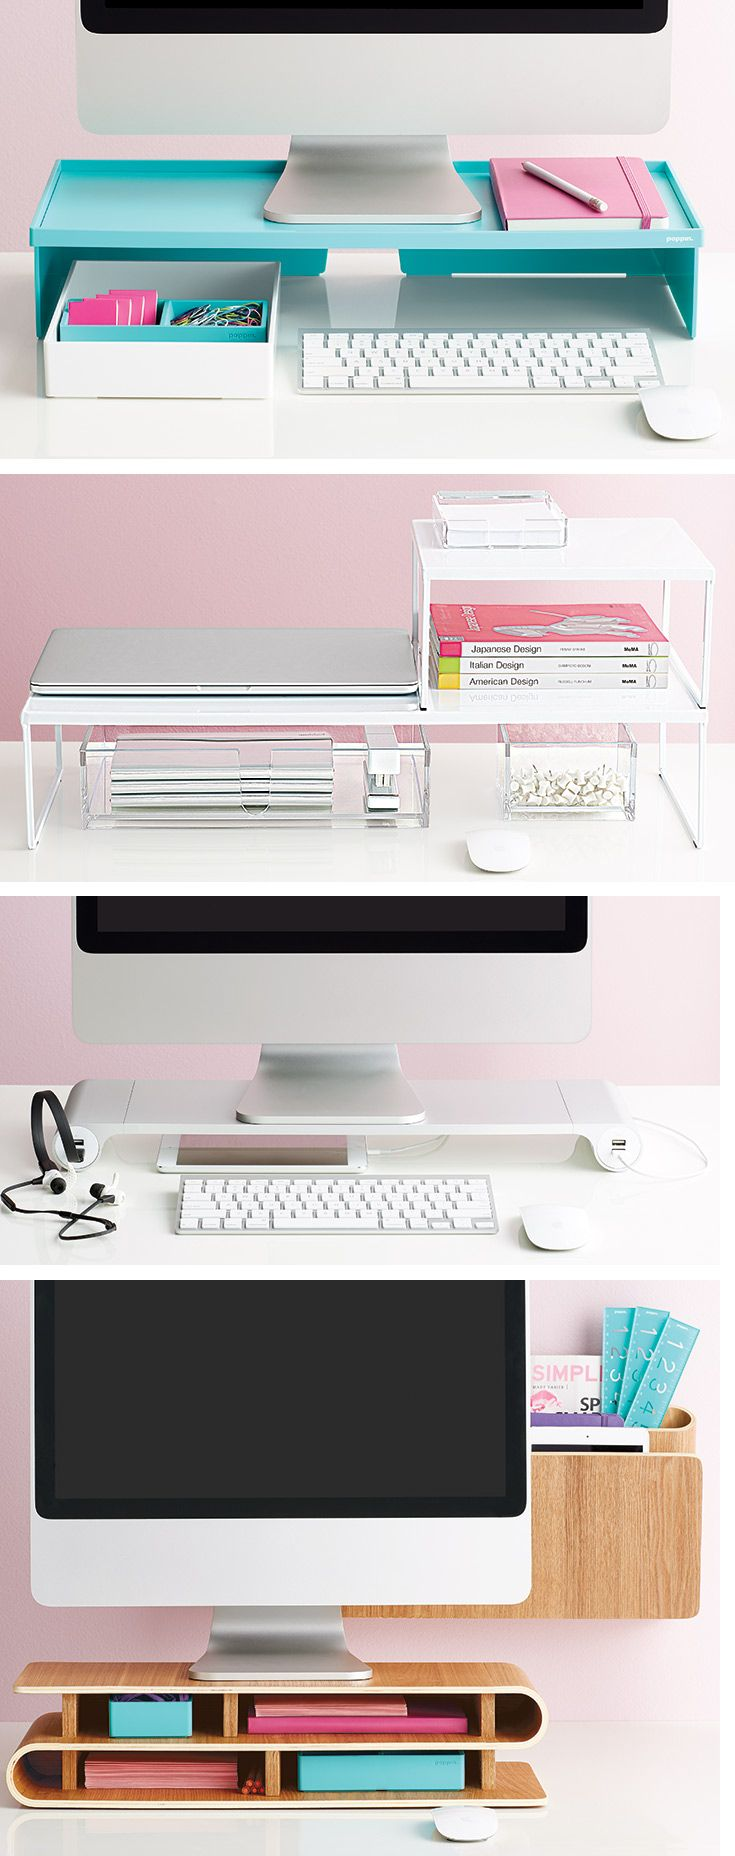 Diy office cubicle door - Organize Every Desk Setup With Creative Options From The Container Store